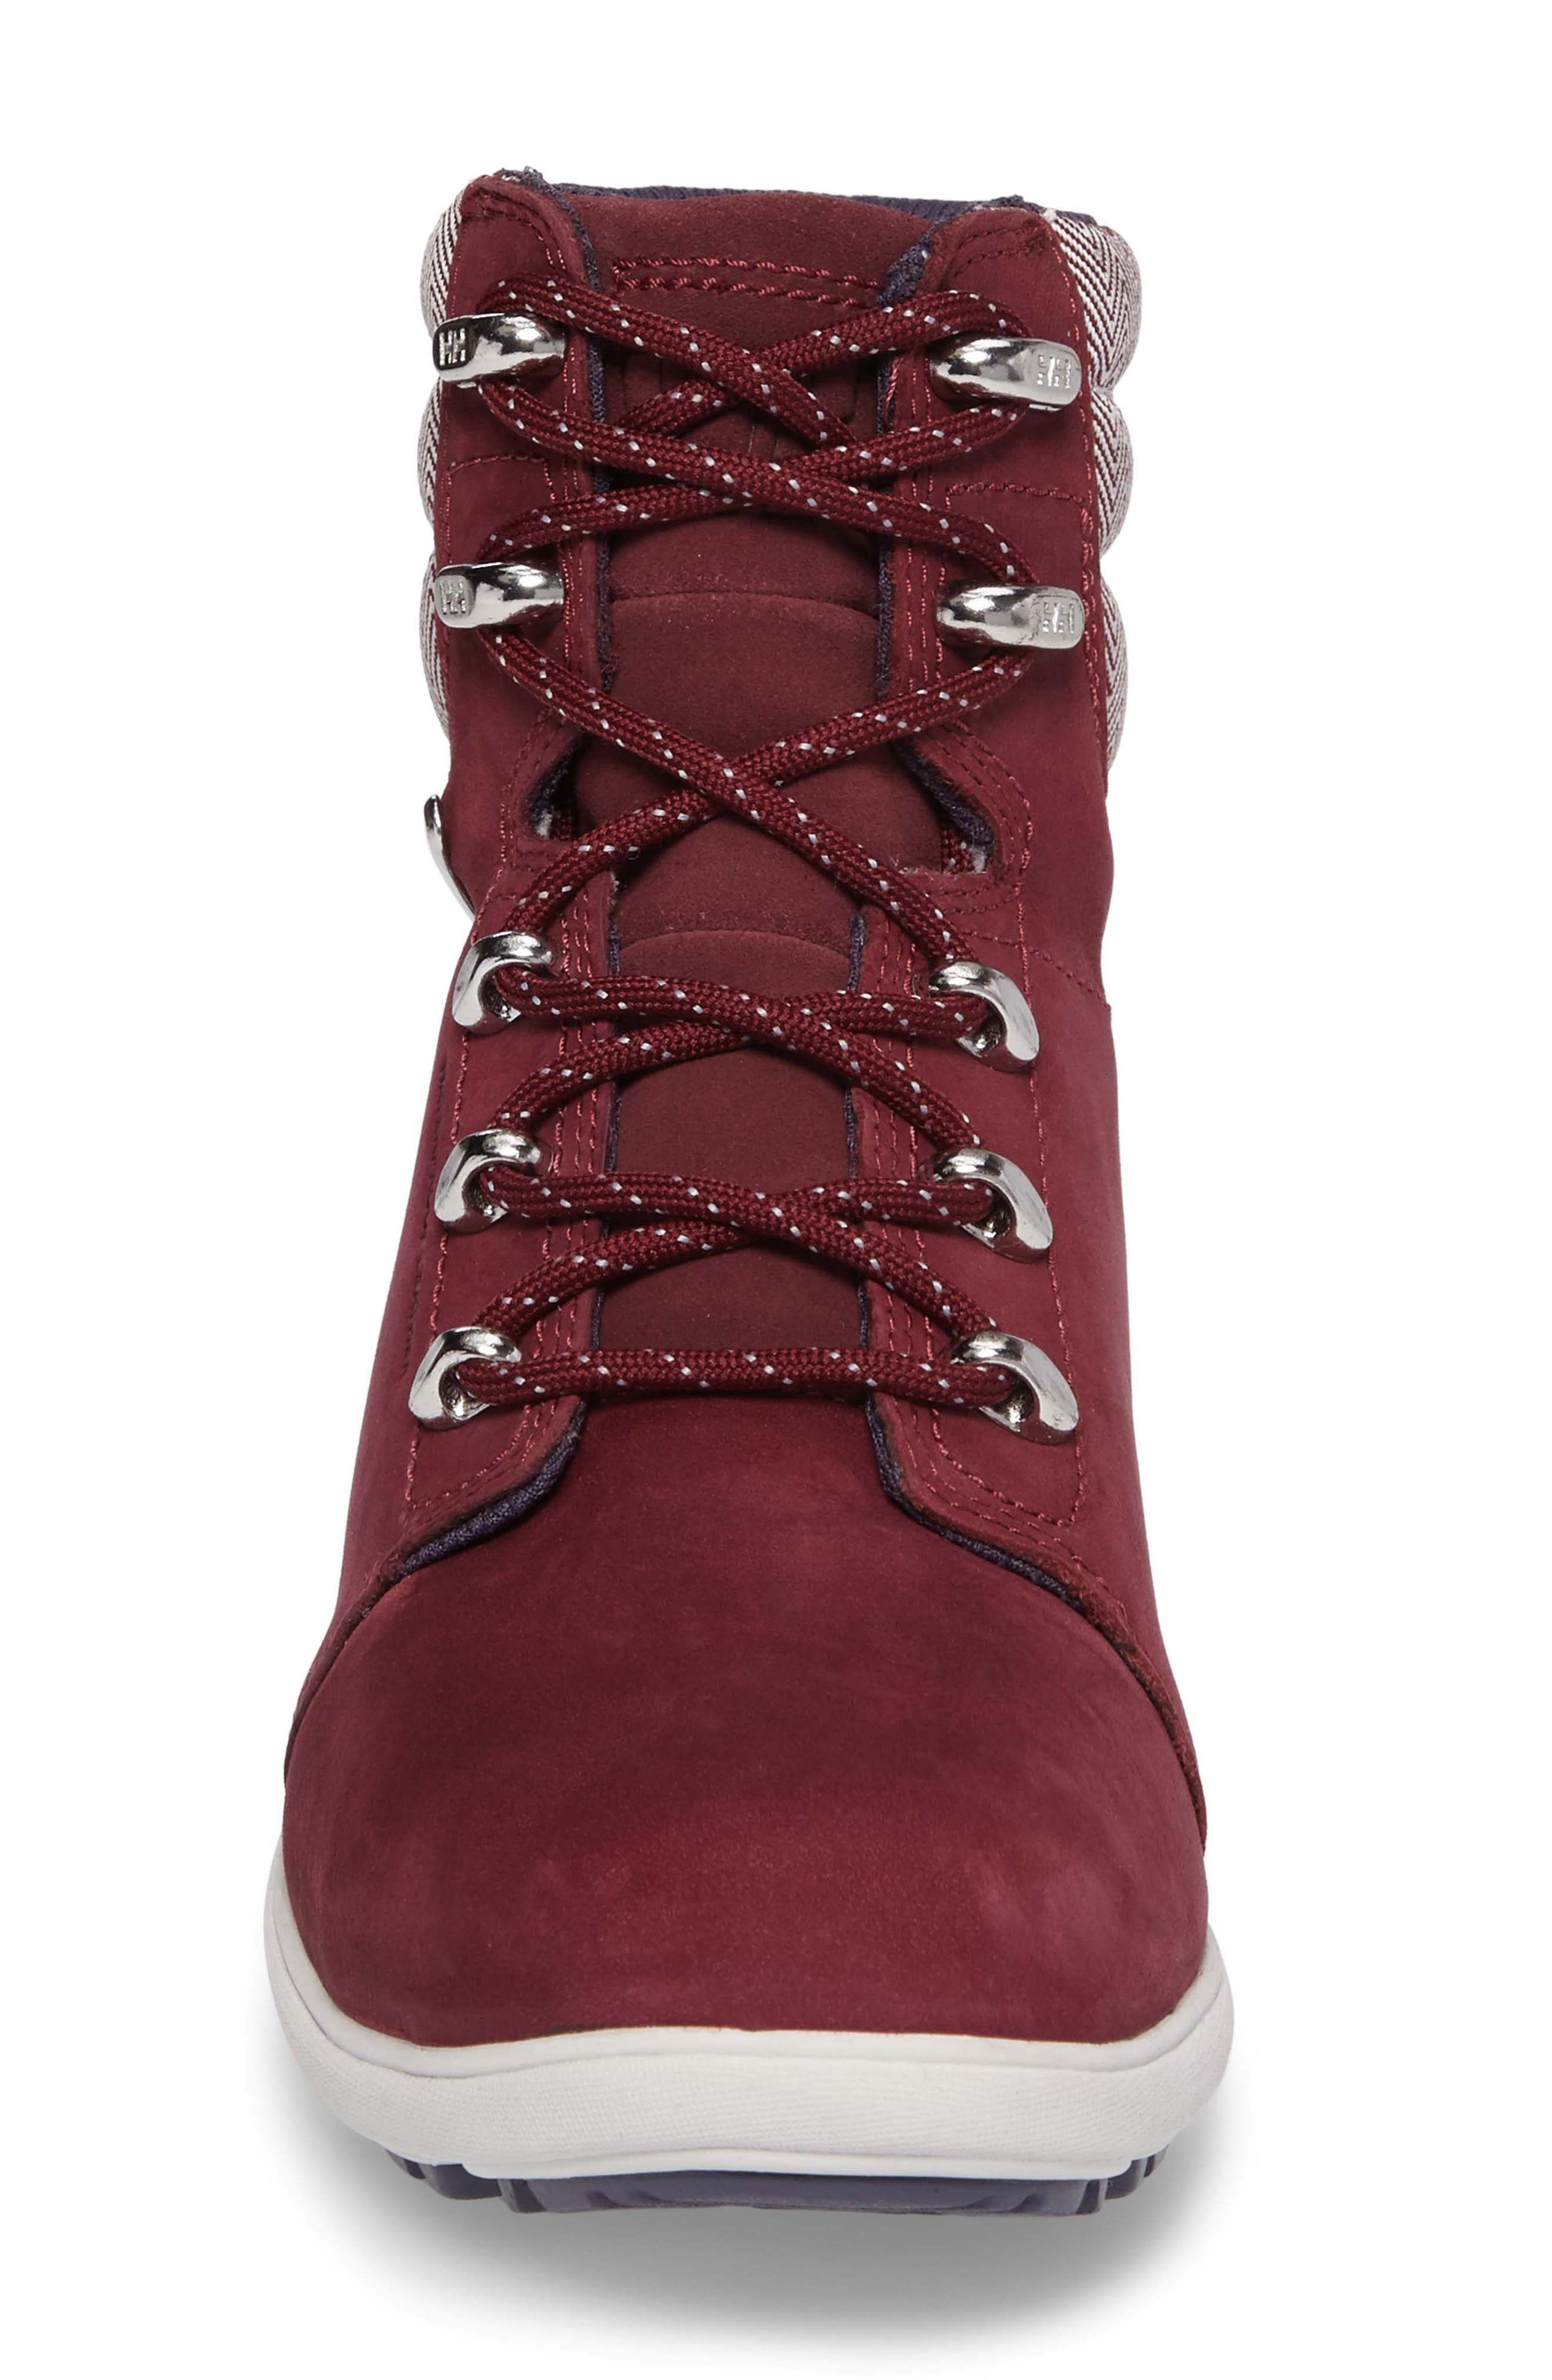 'W.A.S.T 2' Waterproof Hiker Boot,                             Alternate thumbnail 4, color,                             Port / Ash Grey / Graphite